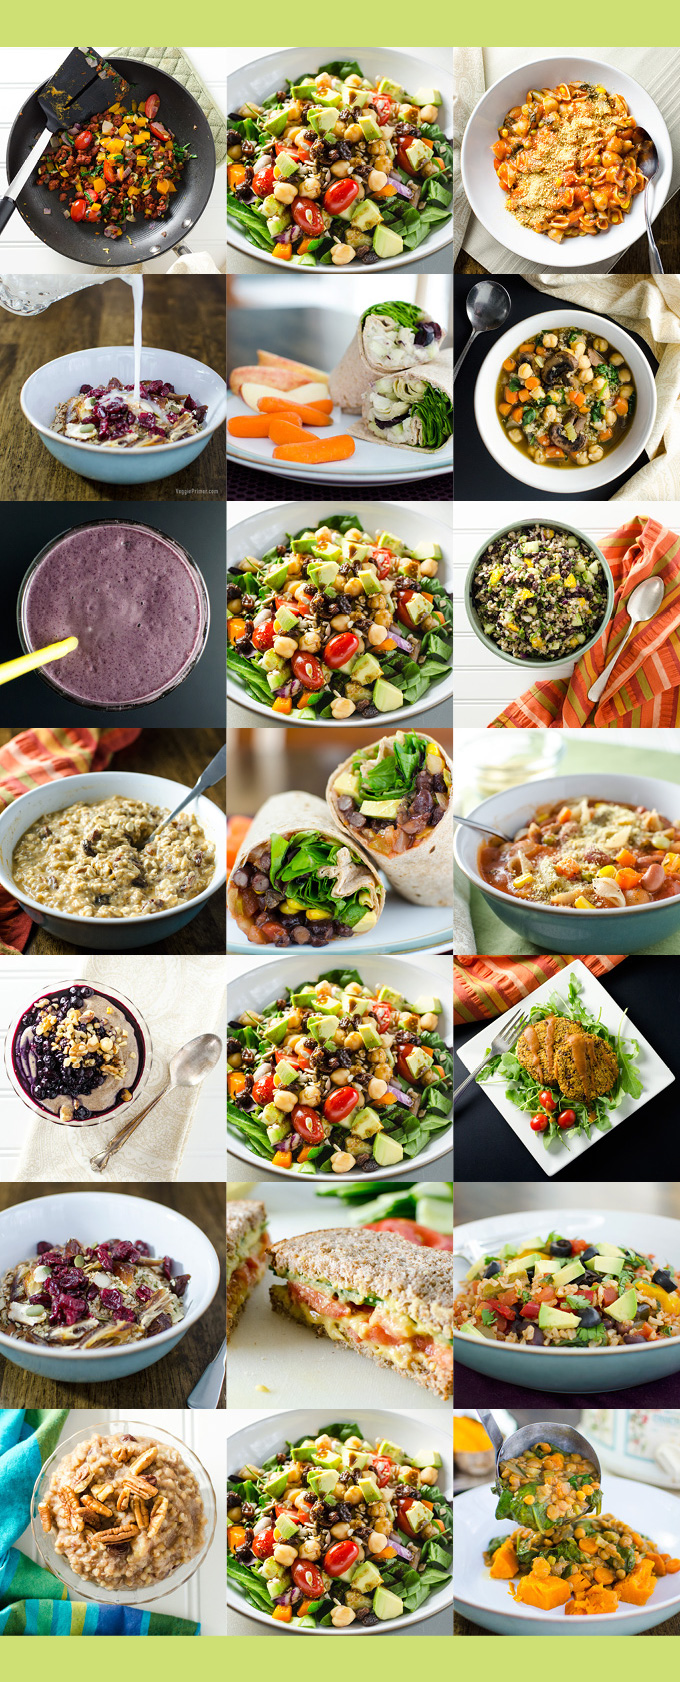 Easy One-Week Plant-Based Meal Plan - this collection of simple gluten-free vegan recipes offers a way to stay healthy when you don't have a lot of time to cook | VeggiePrimer.com